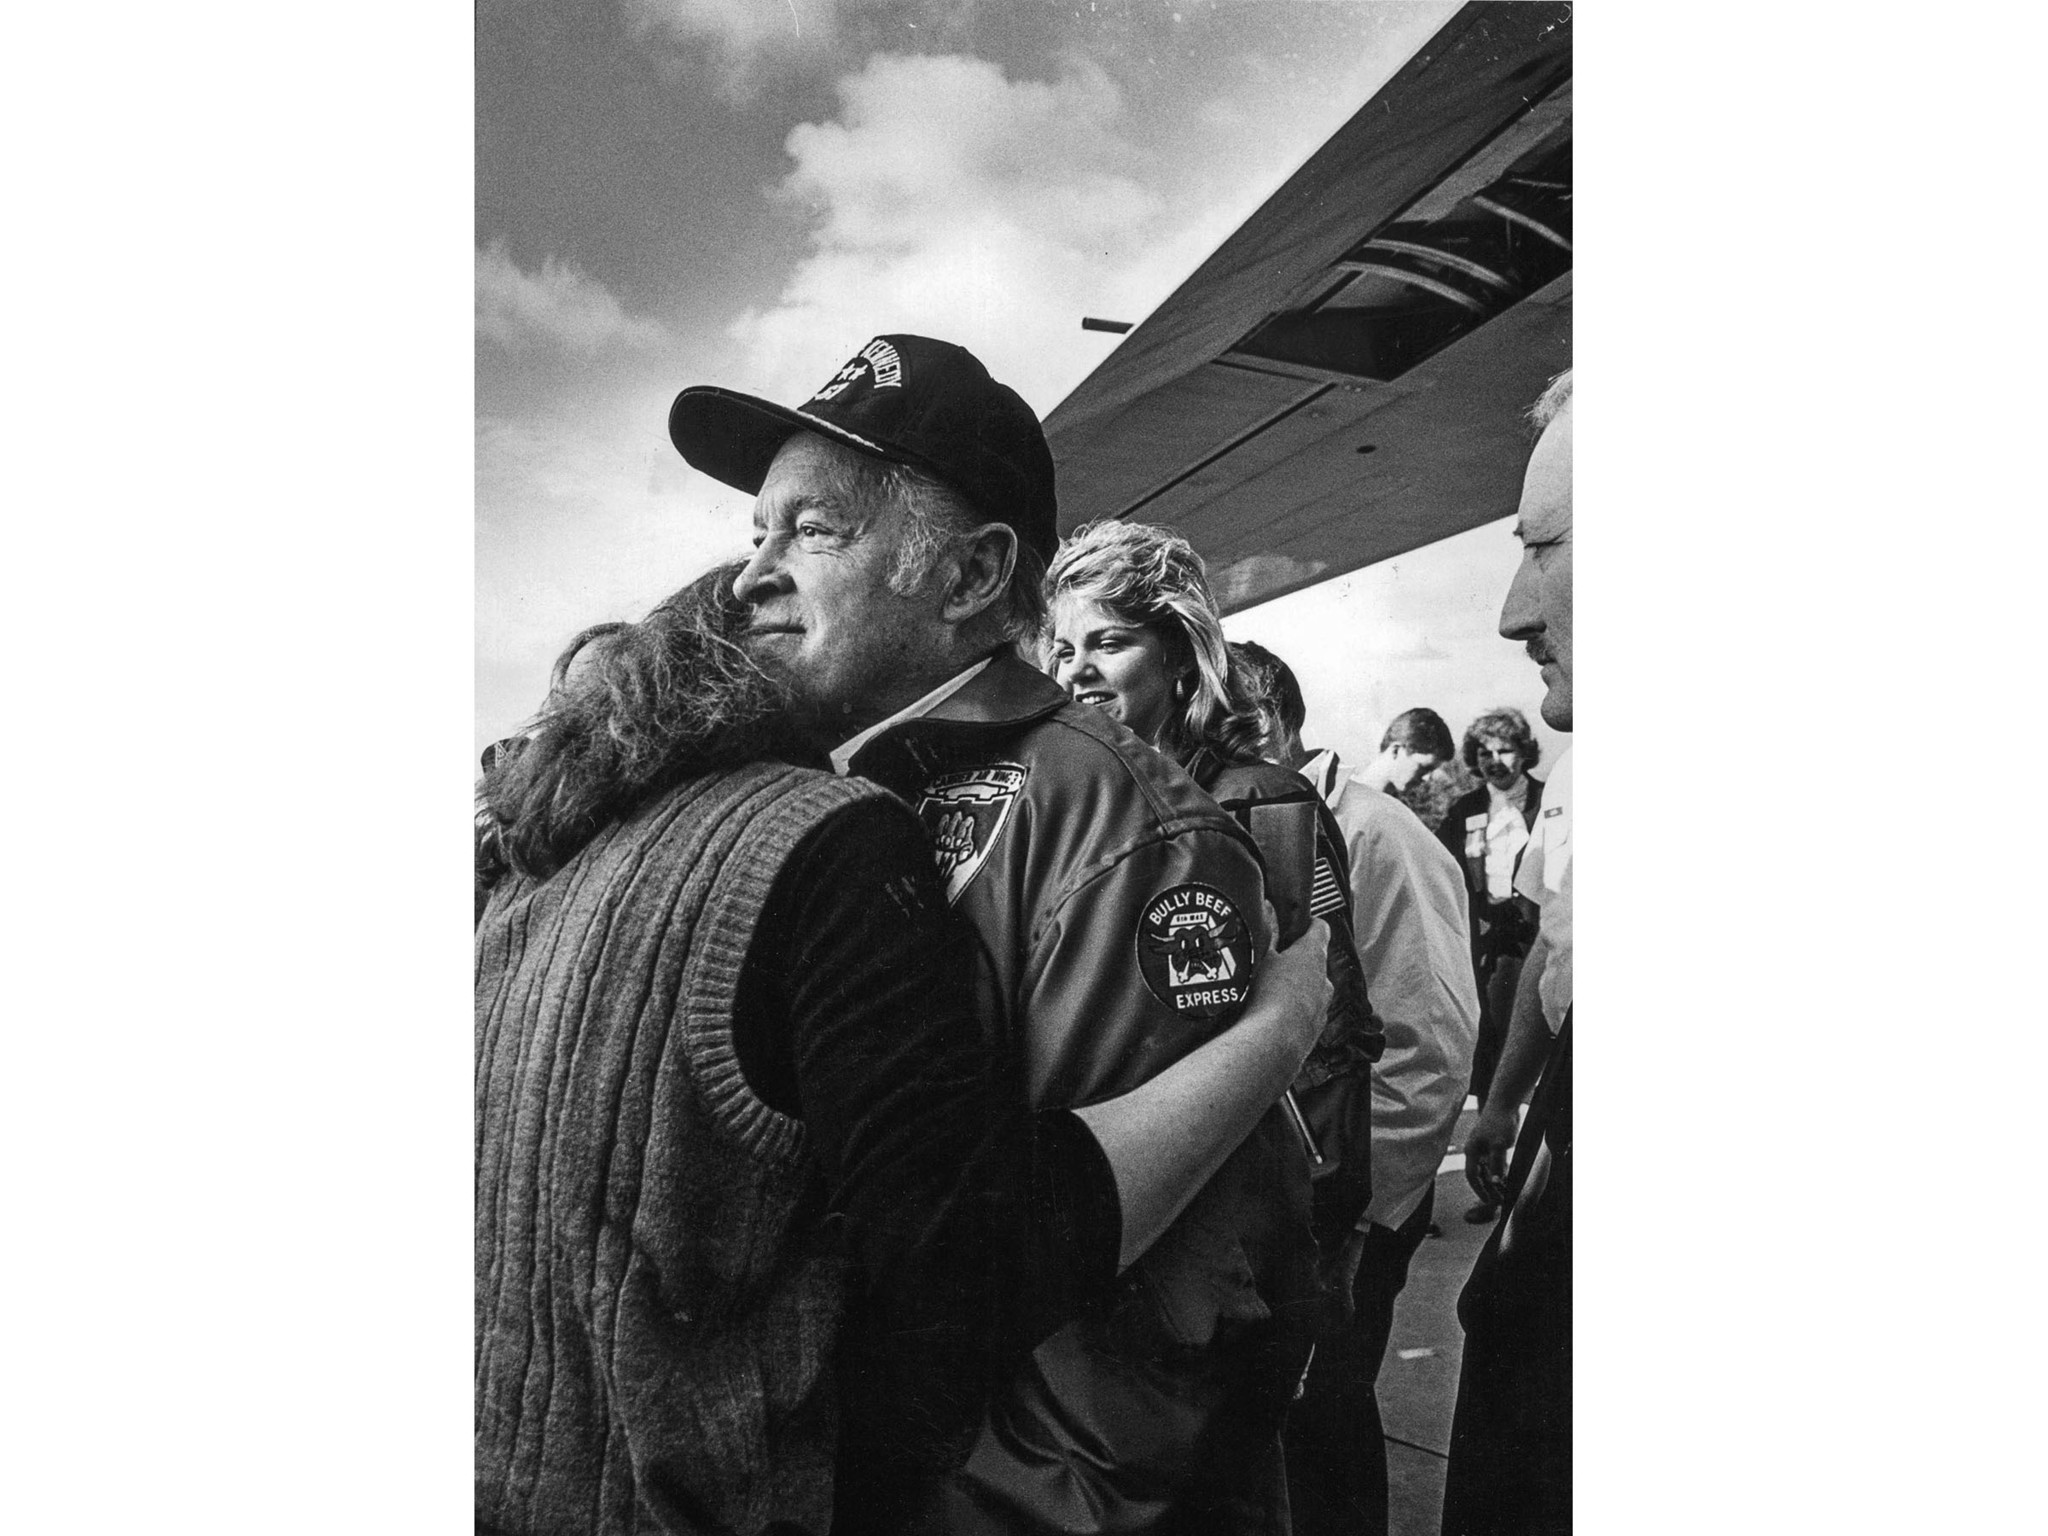 Dec. 27, 1983: Bob Hope gets a hug from an unidentified fan upon his return to Van Nuys Airport afte